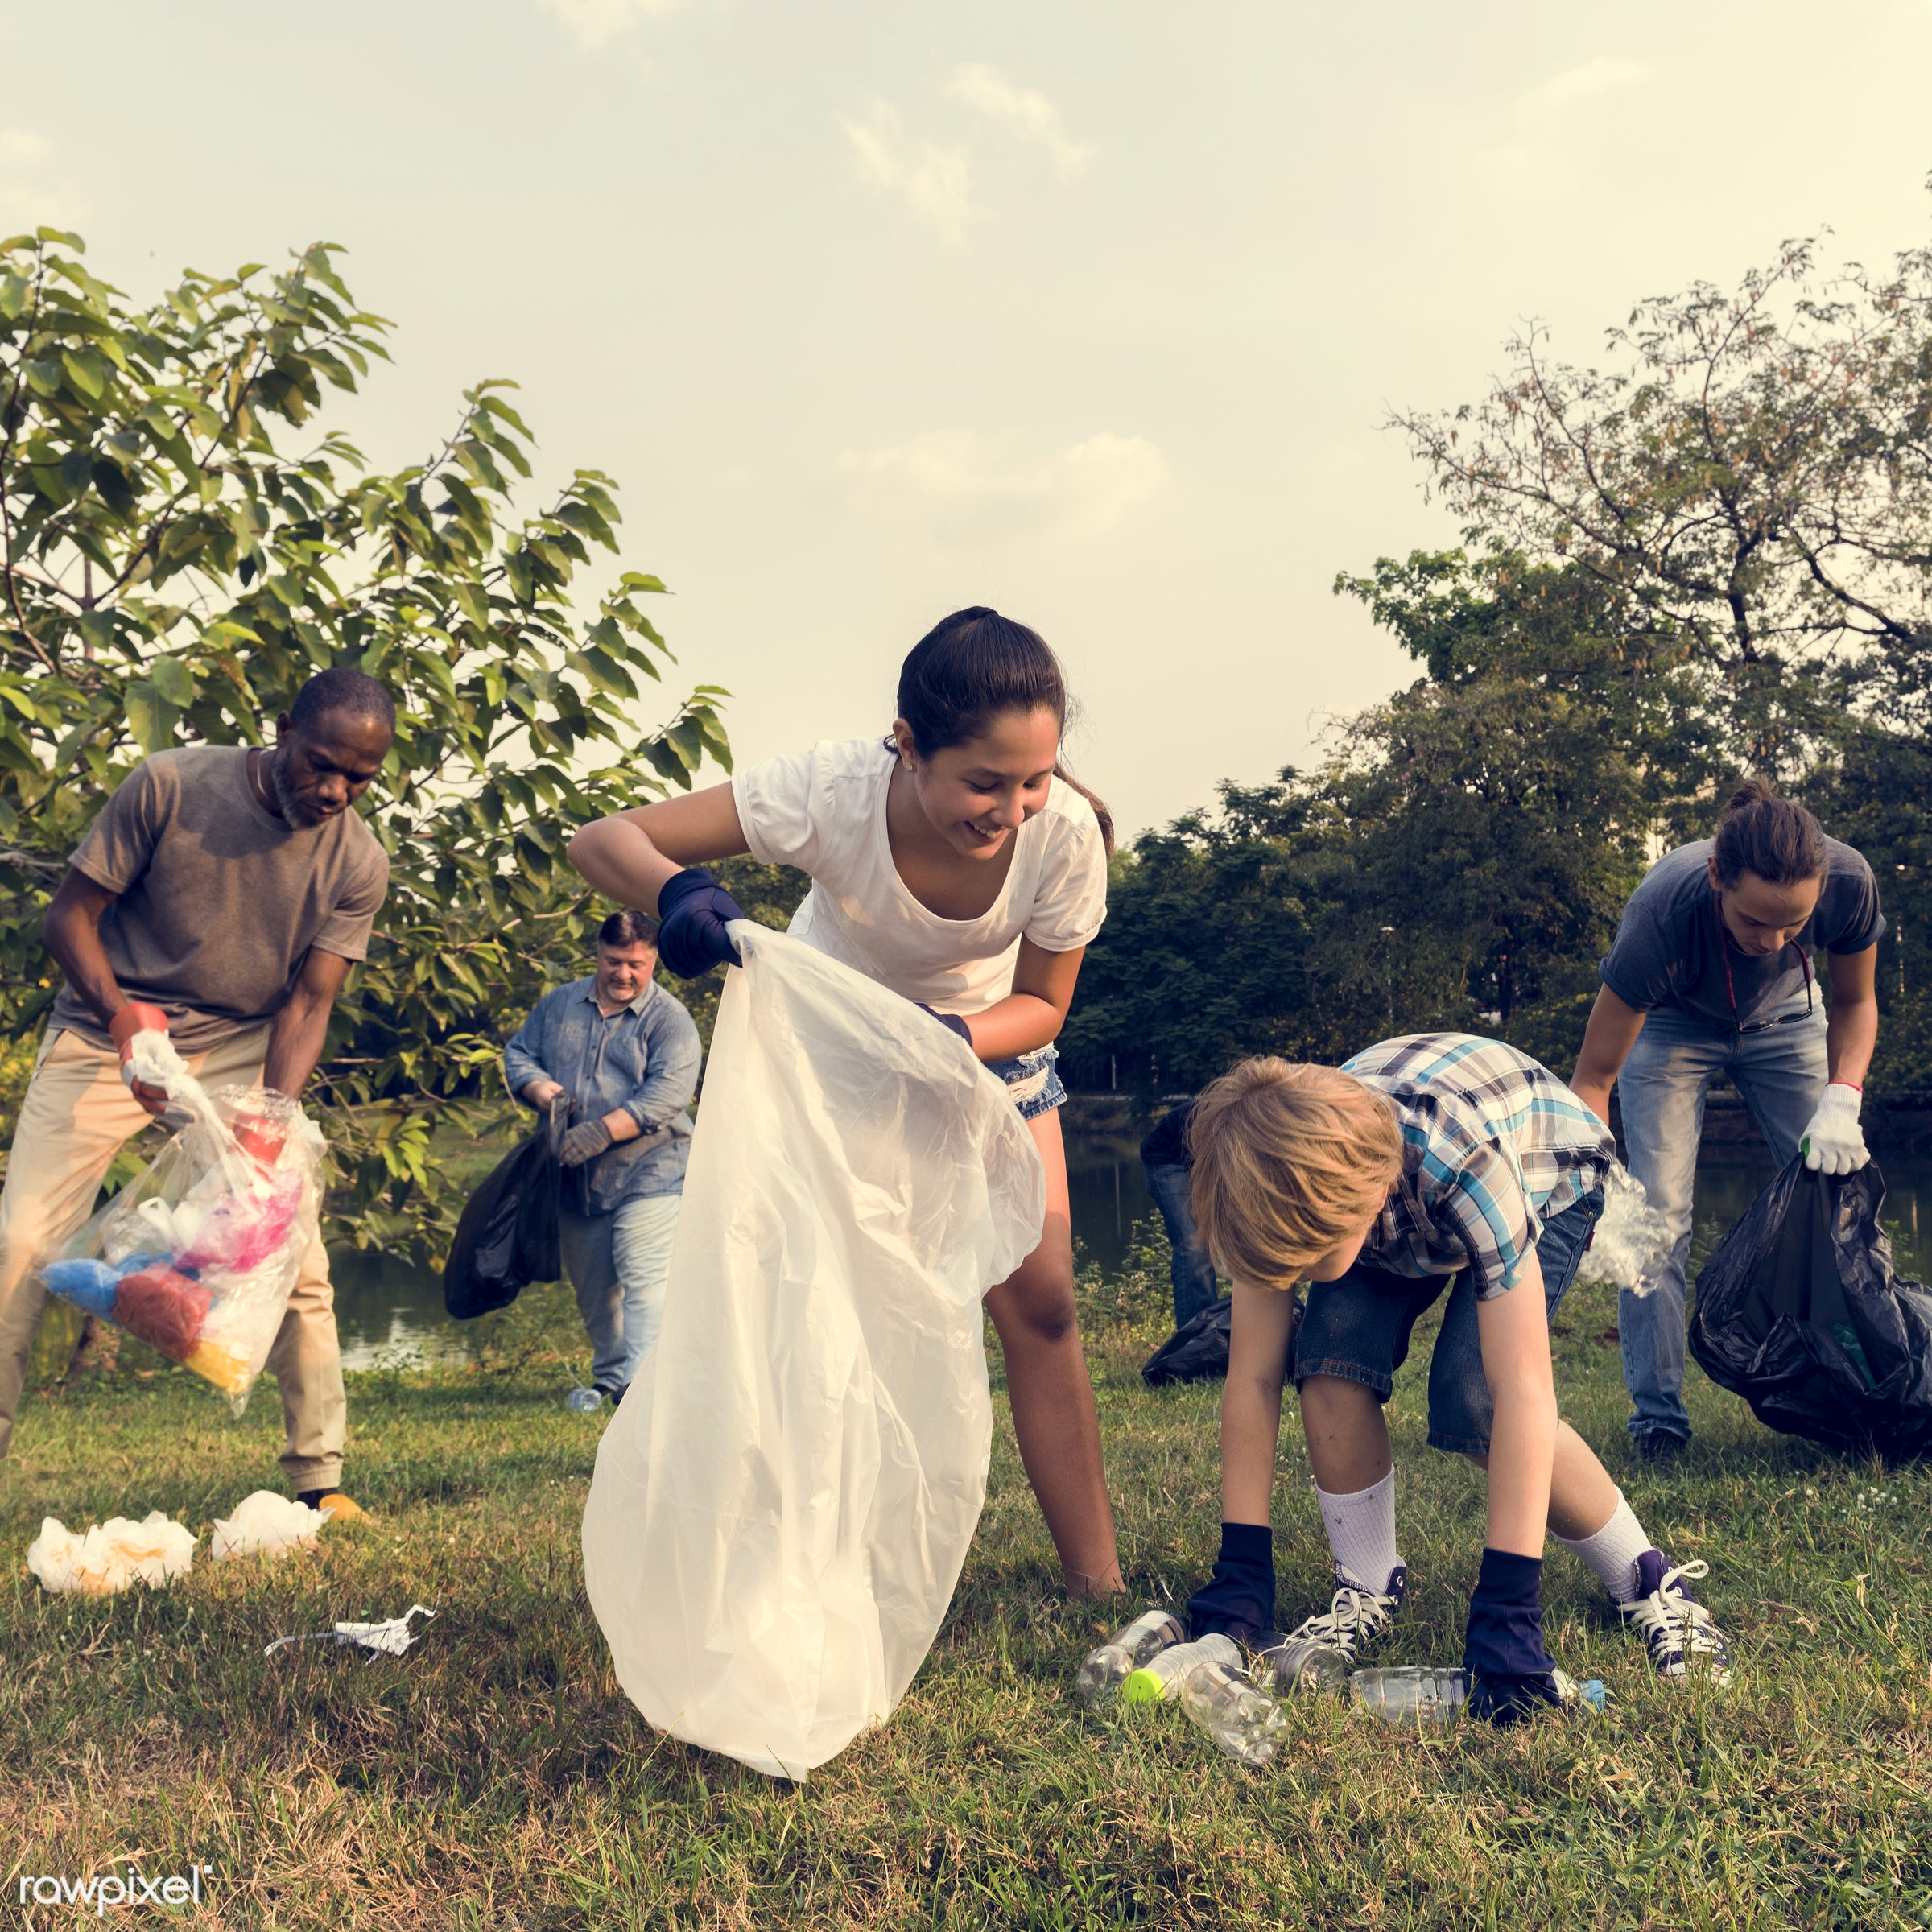 person, plastic, save, community service, garbage, people, together, kid, help, nature, woman, friendship, bottles, go green...